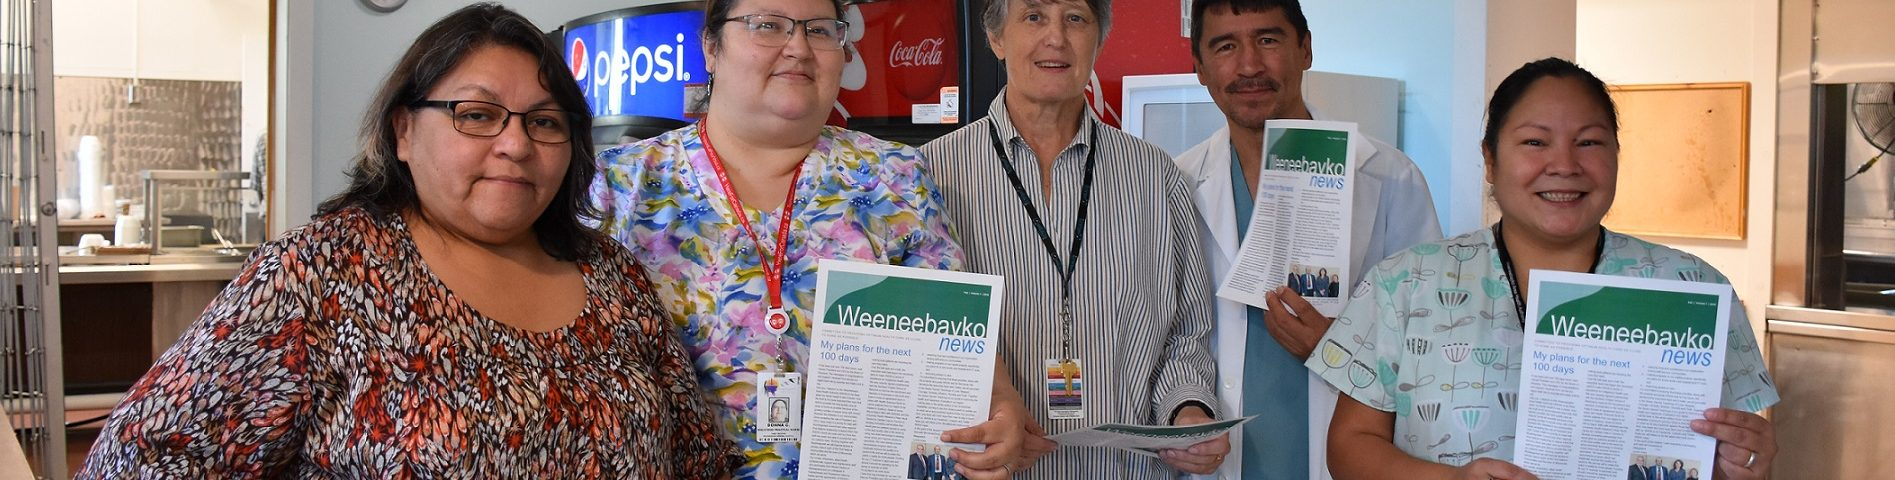 WAHA Staff hold our newly relaunched community newsletter Weeneebayko News